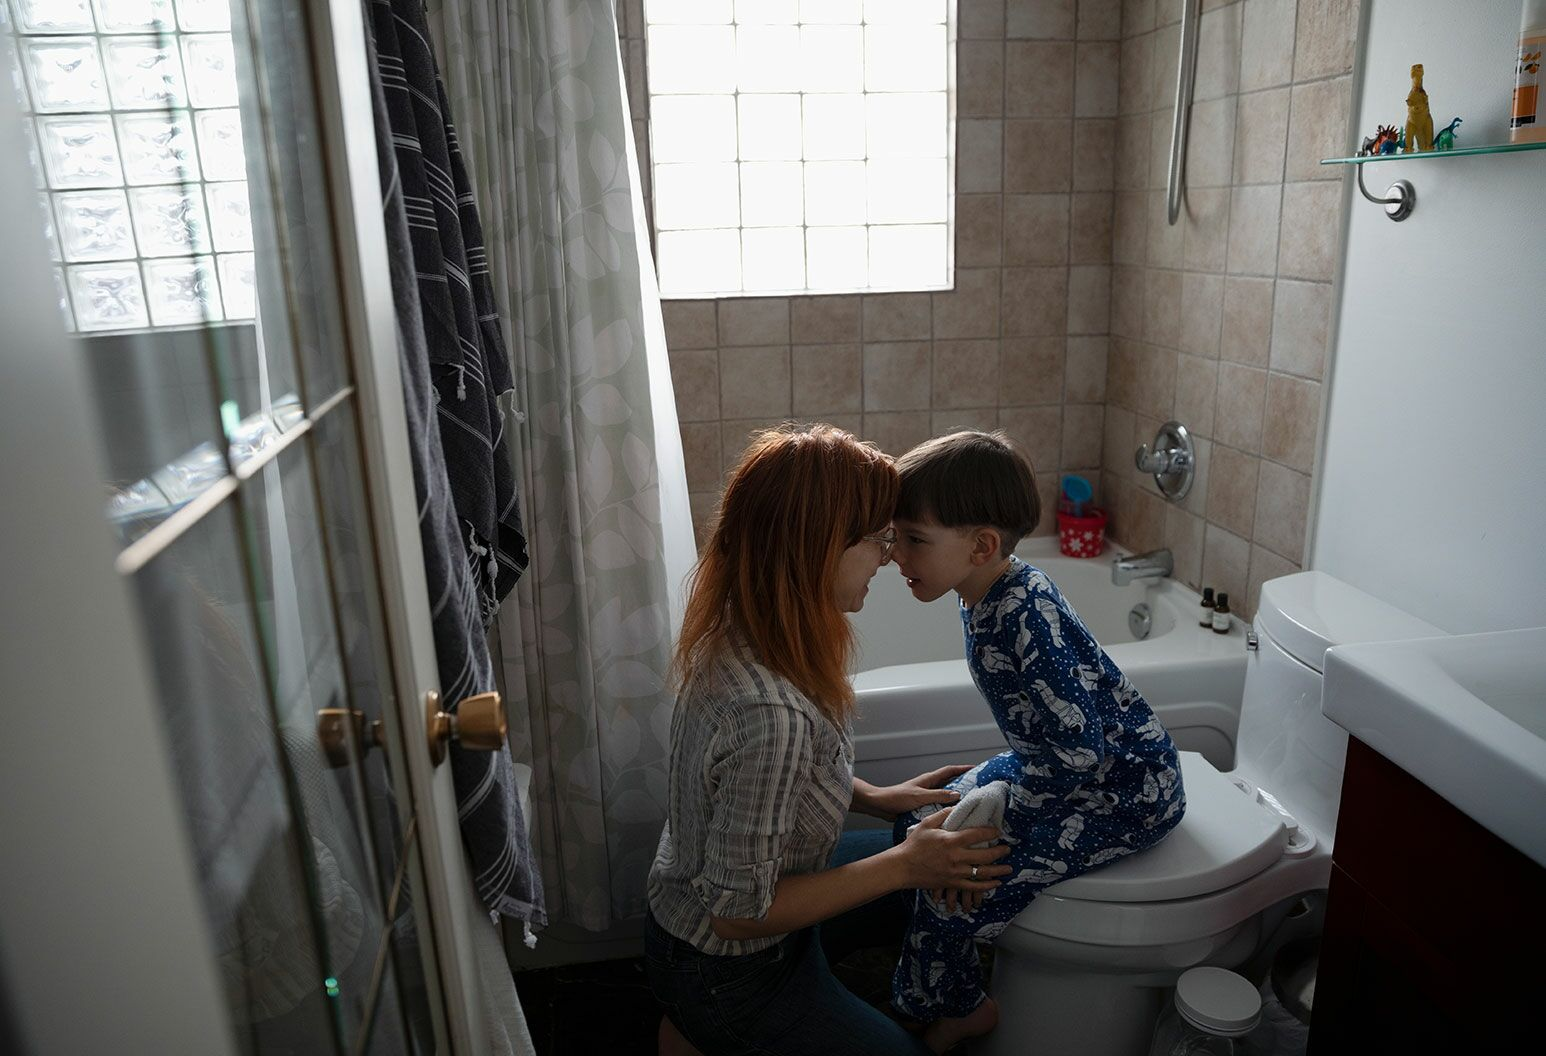 A woman with red hair and glasses kneels in front of a toilet where a young boy in pajamas sits on the lid resting his forehead on hers.